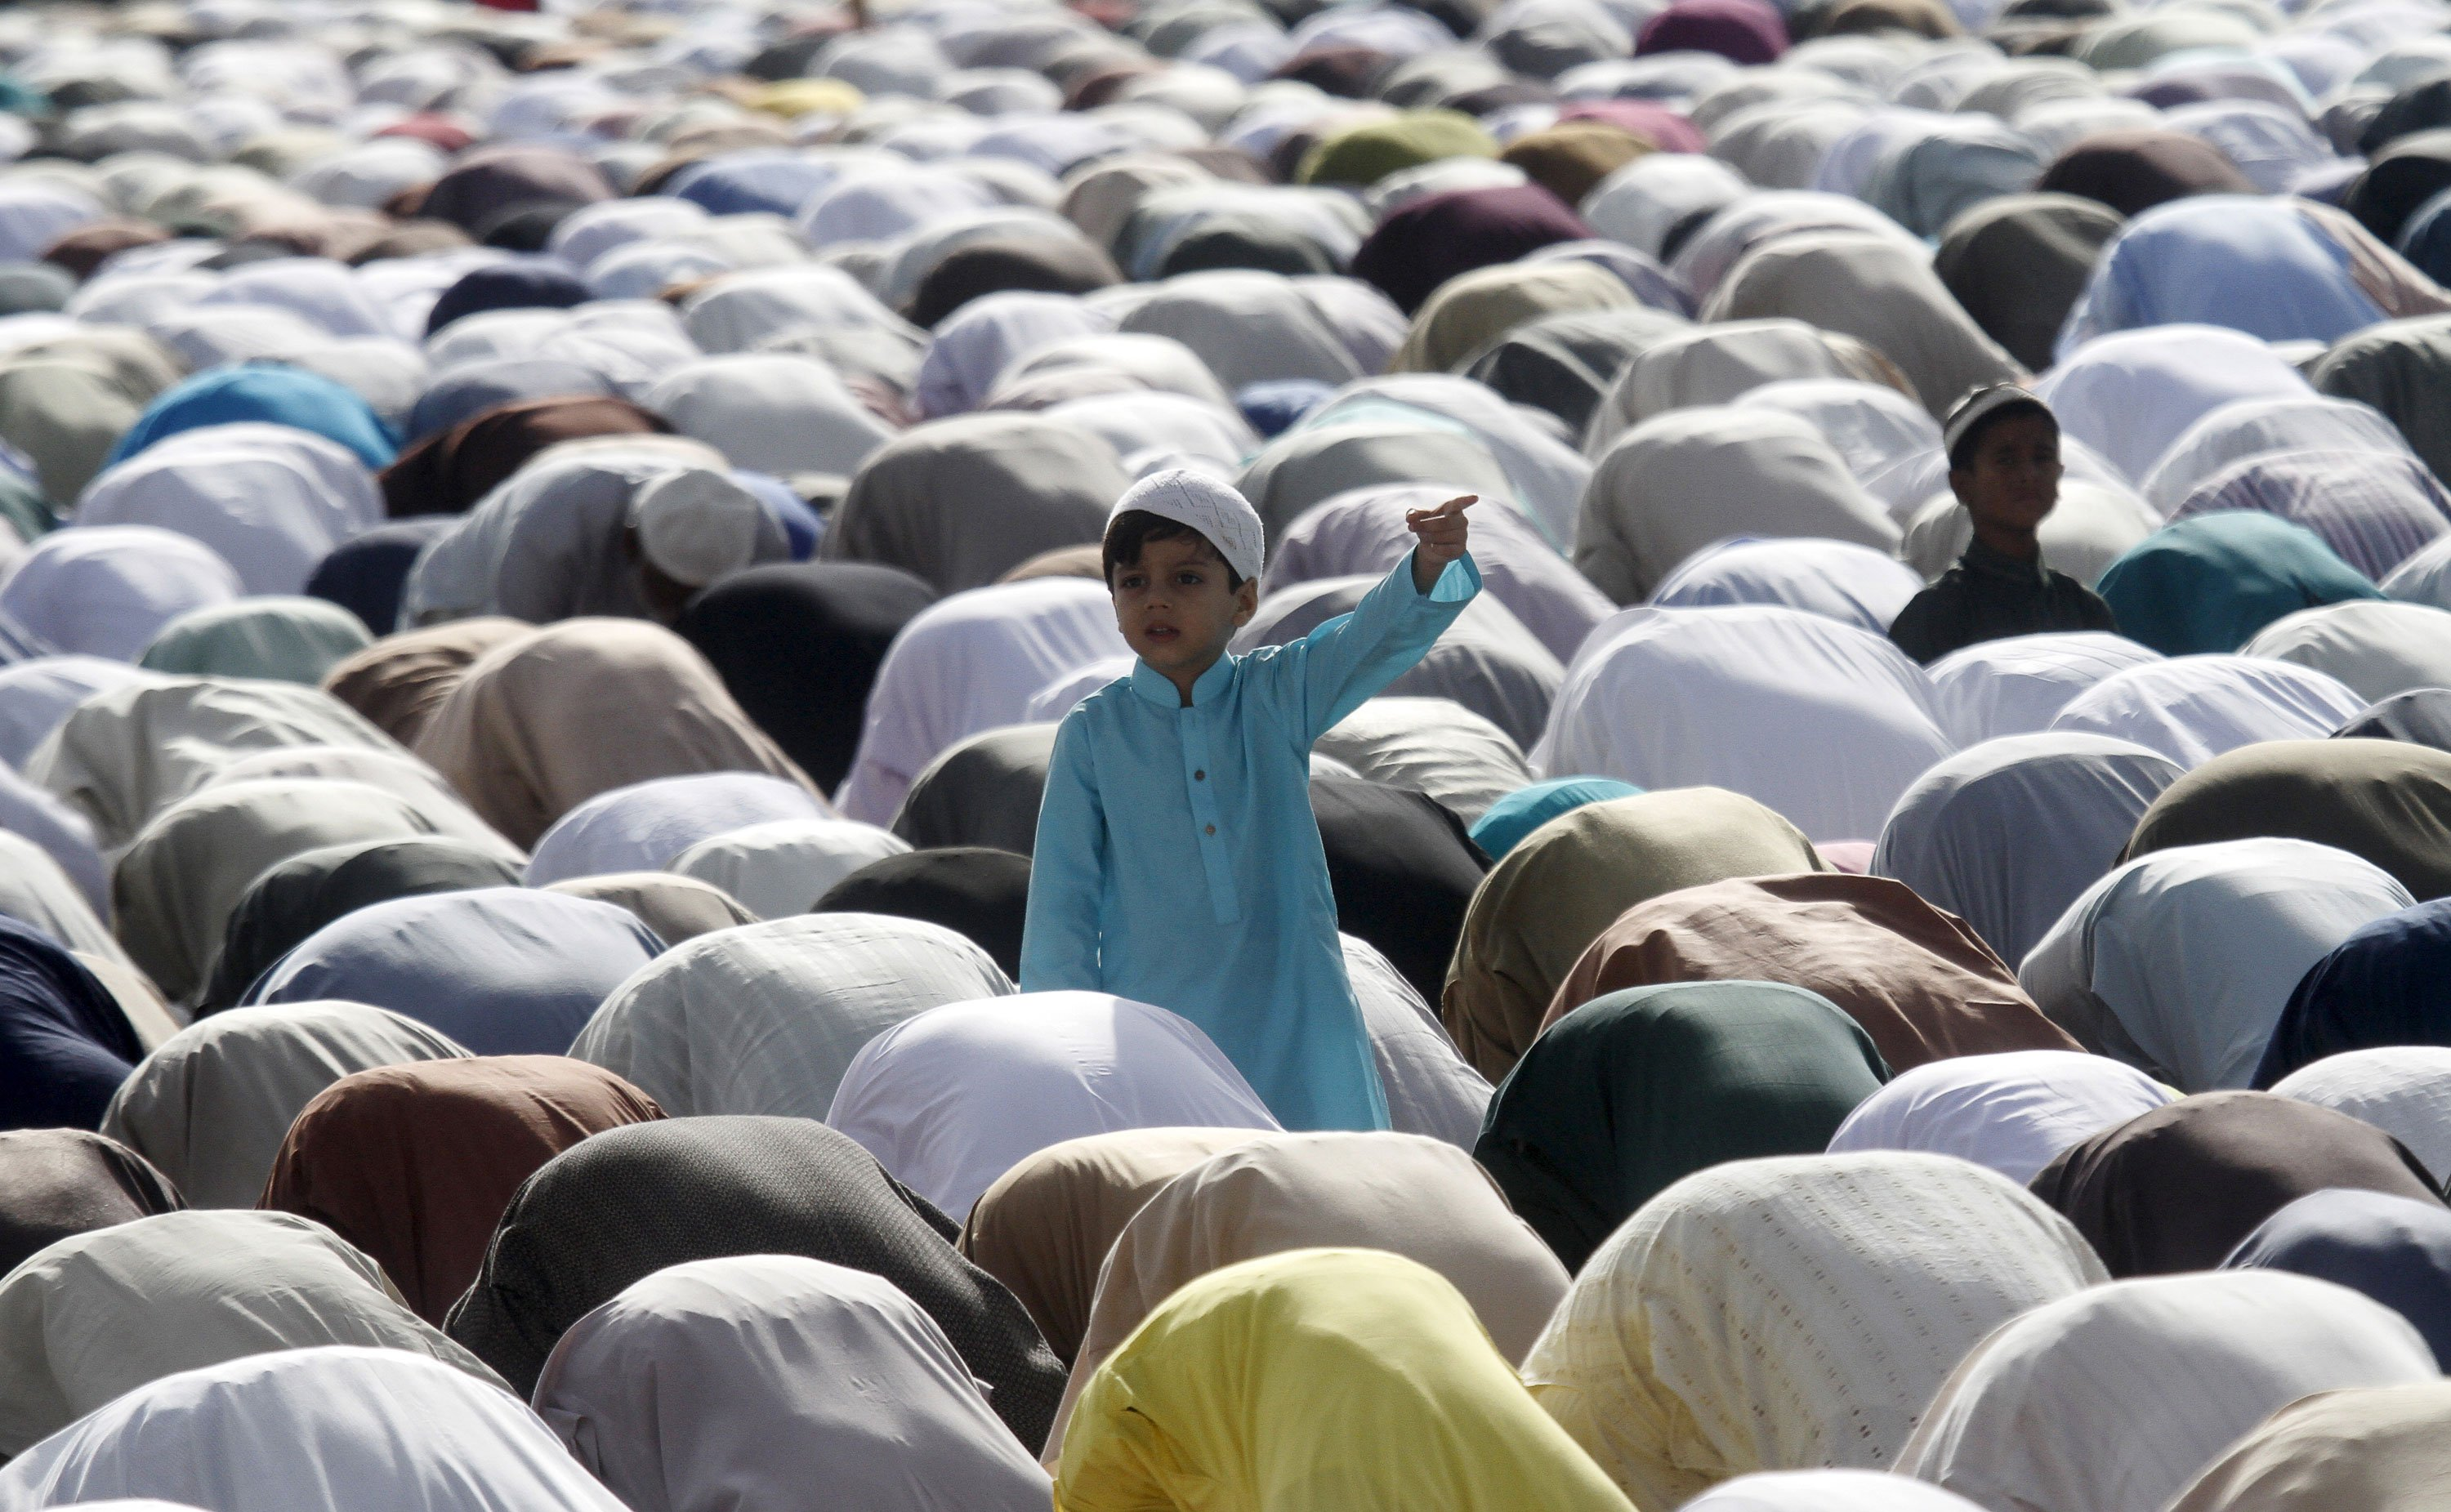 eid mubarak photo reuters